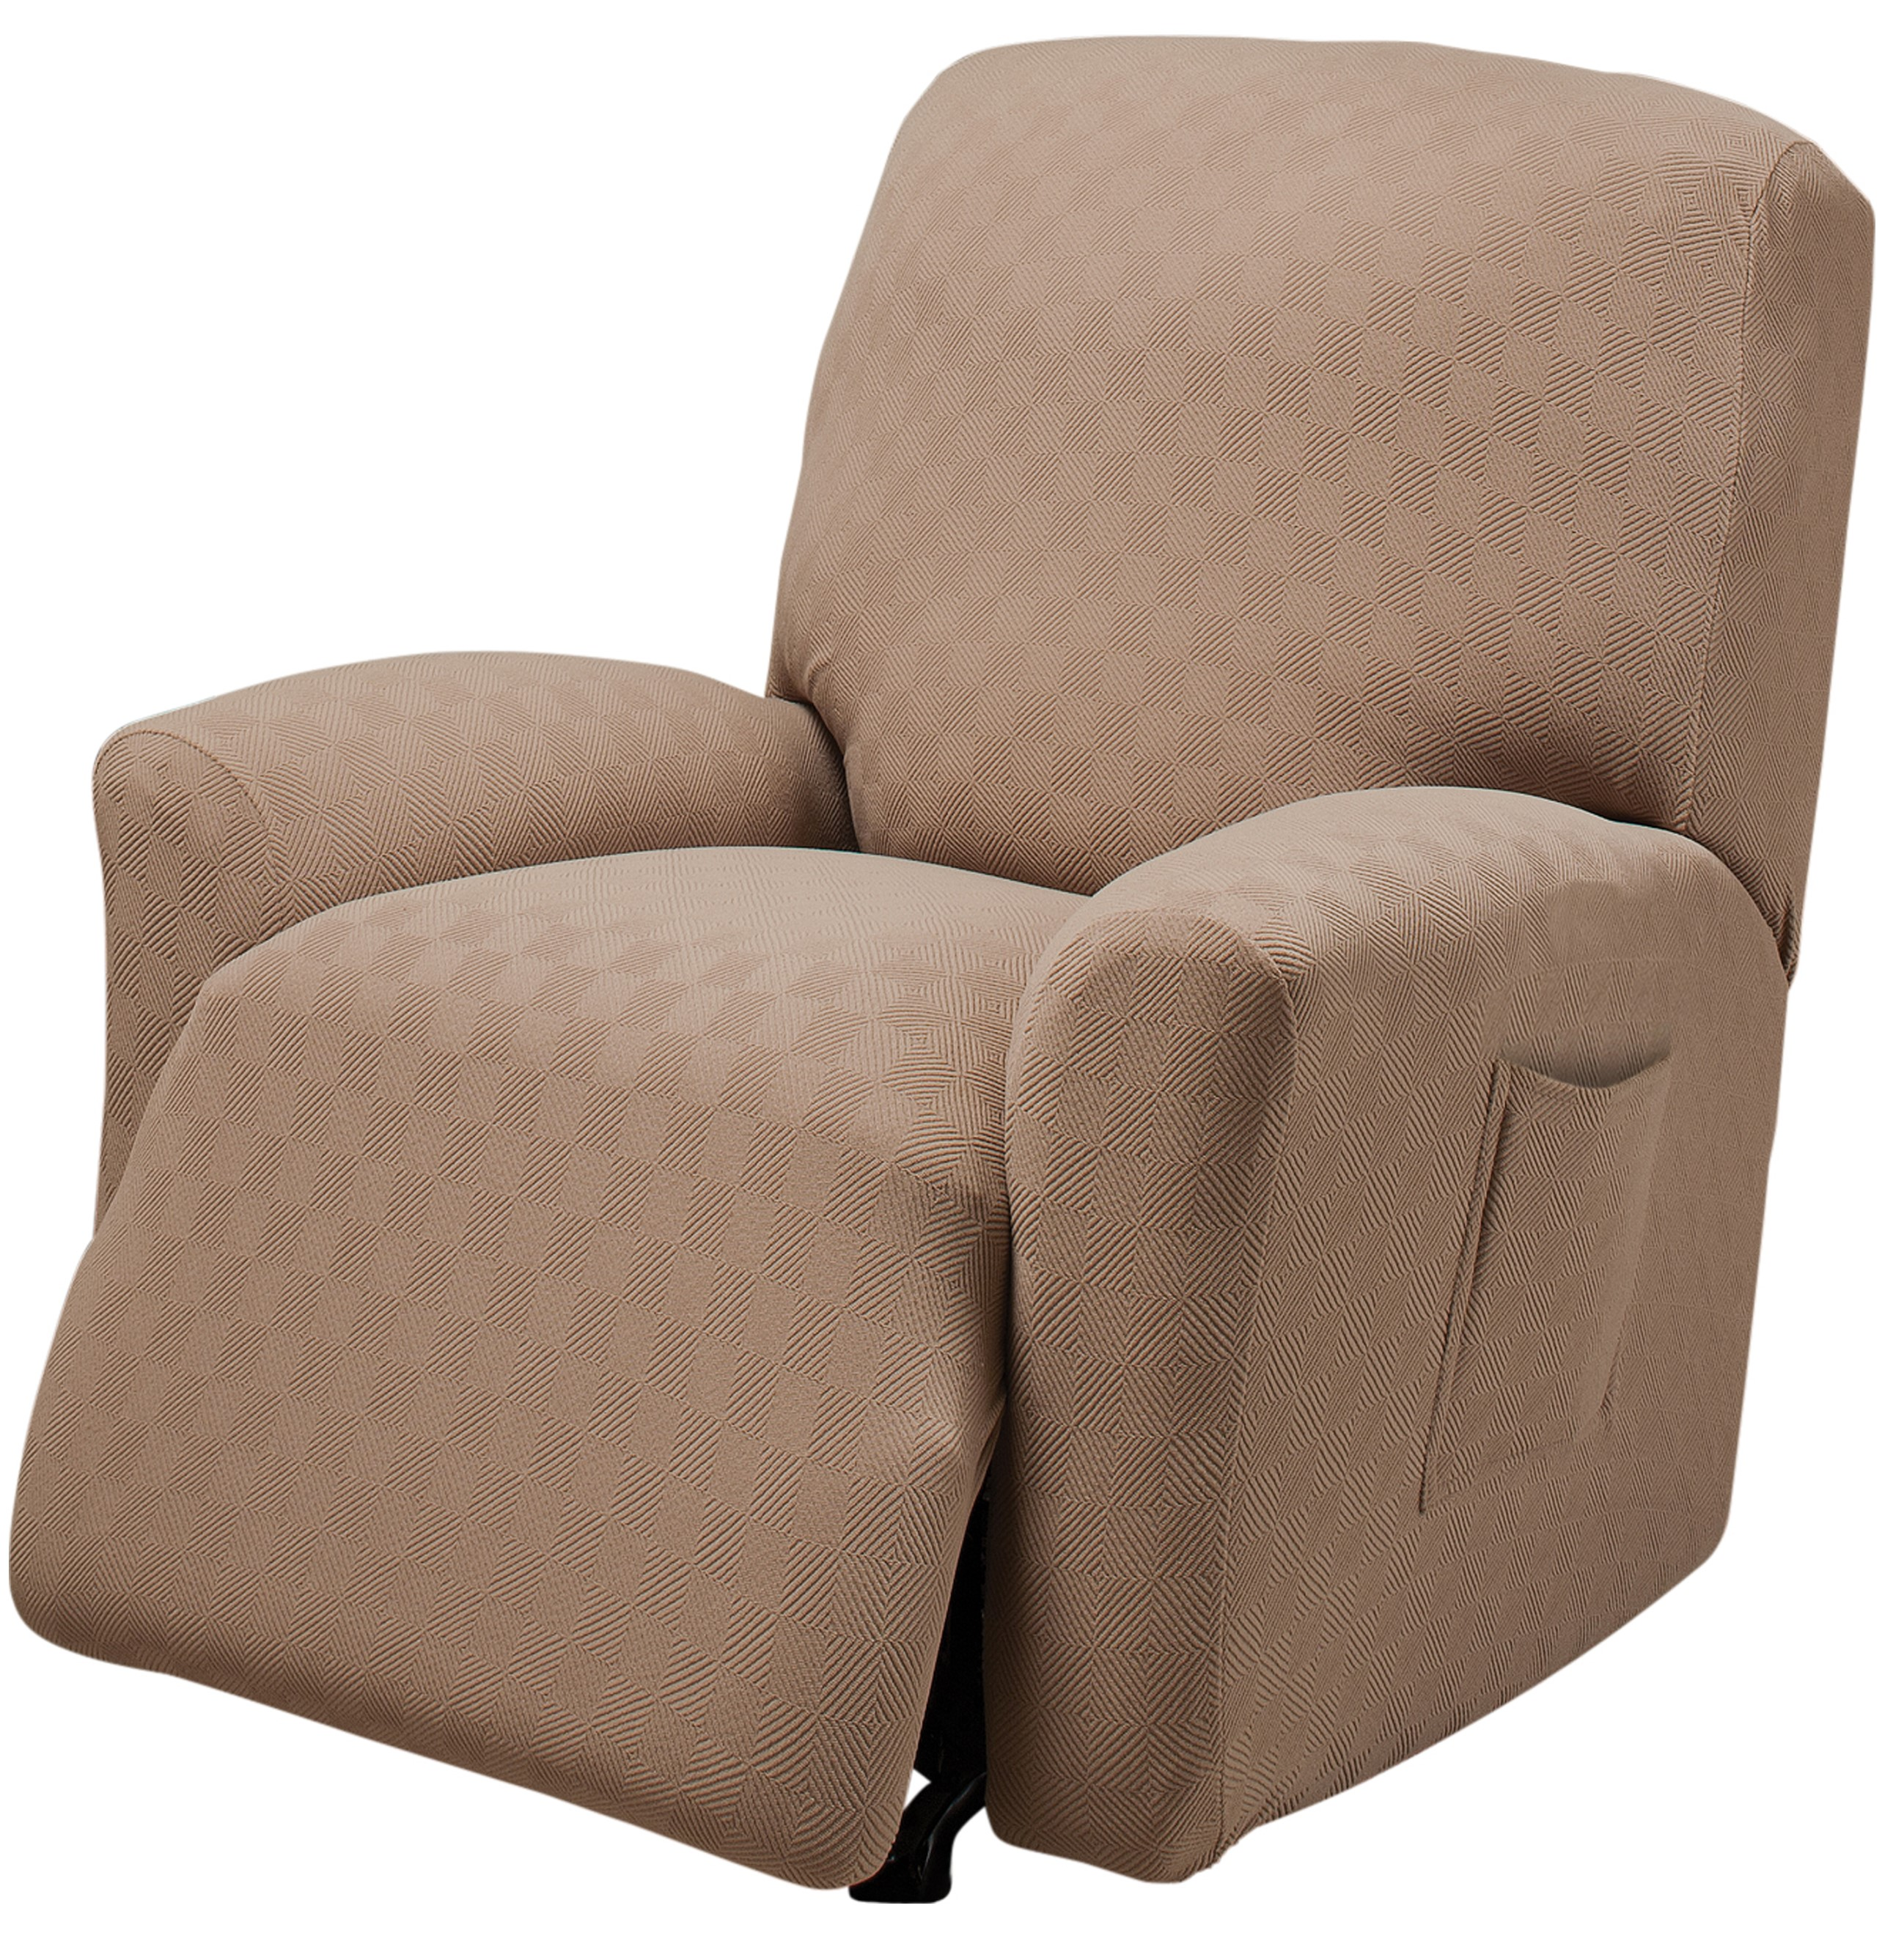 Stretch Sensations Stretch Newport Recliner Slipcover